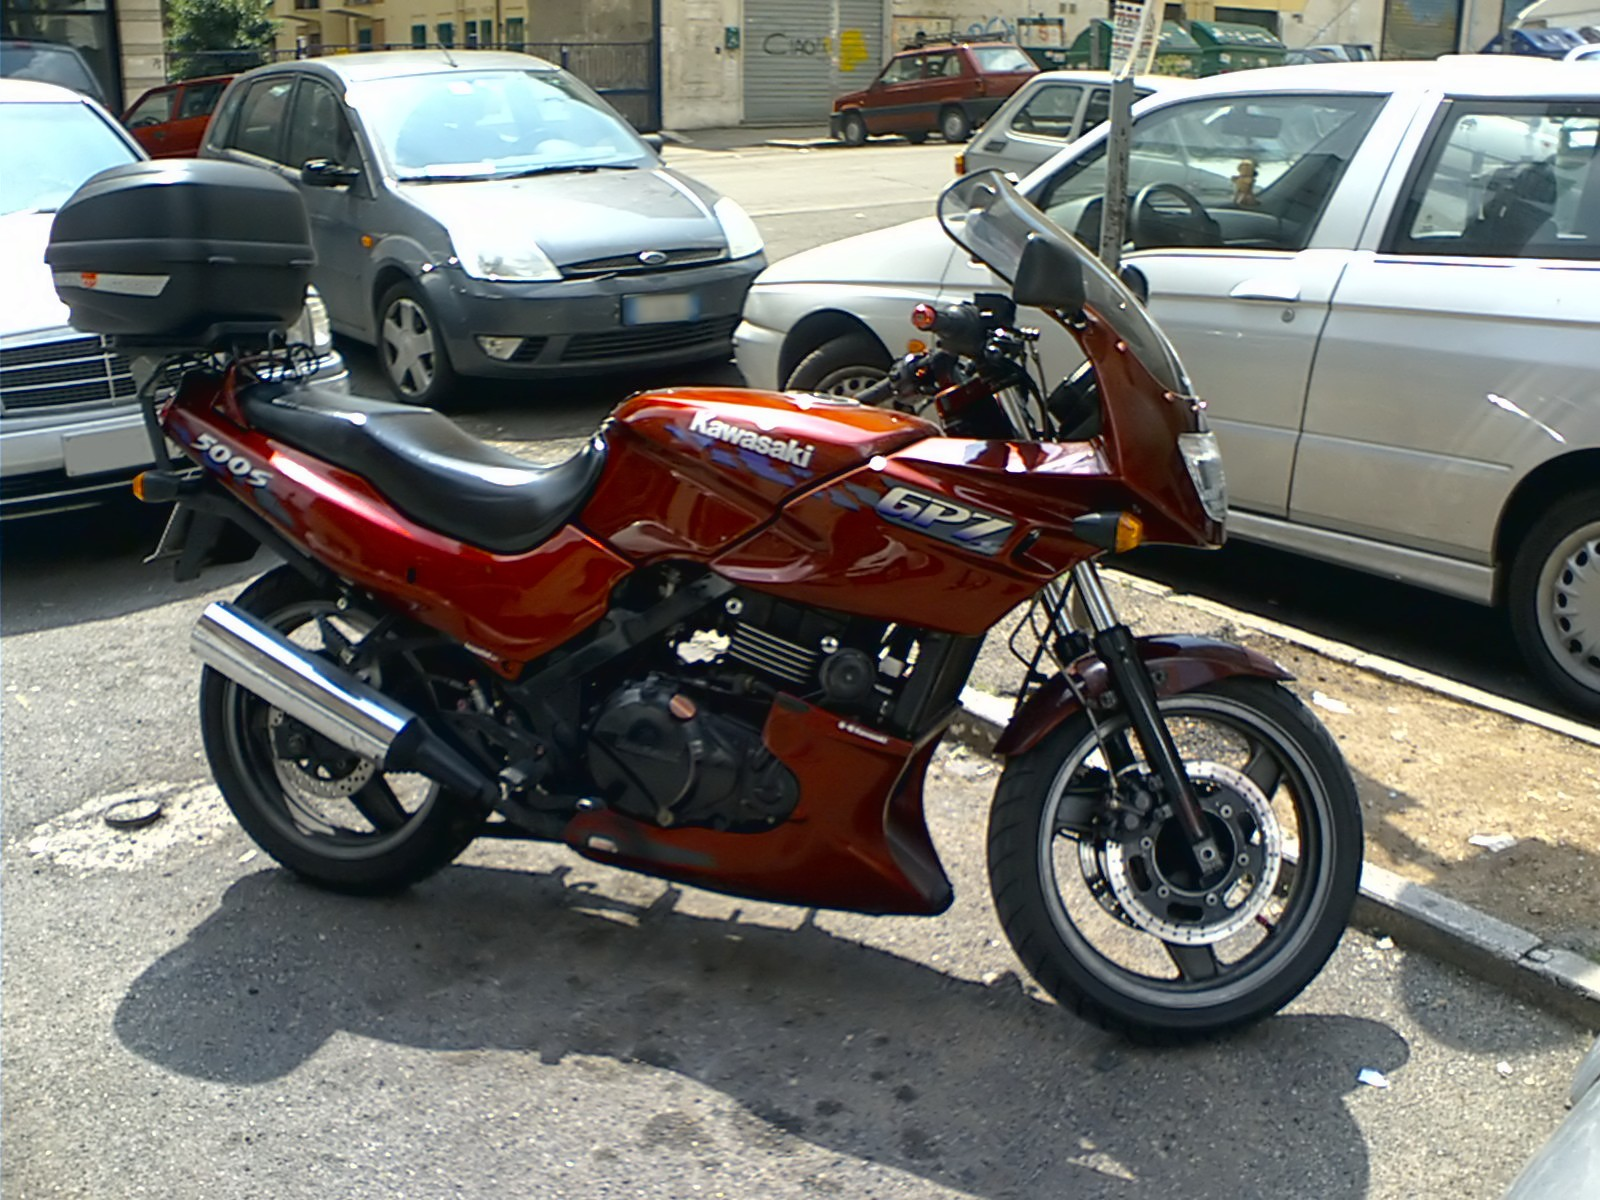 1985 kawasaki gpz 500 pics specs and information. Black Bedroom Furniture Sets. Home Design Ideas